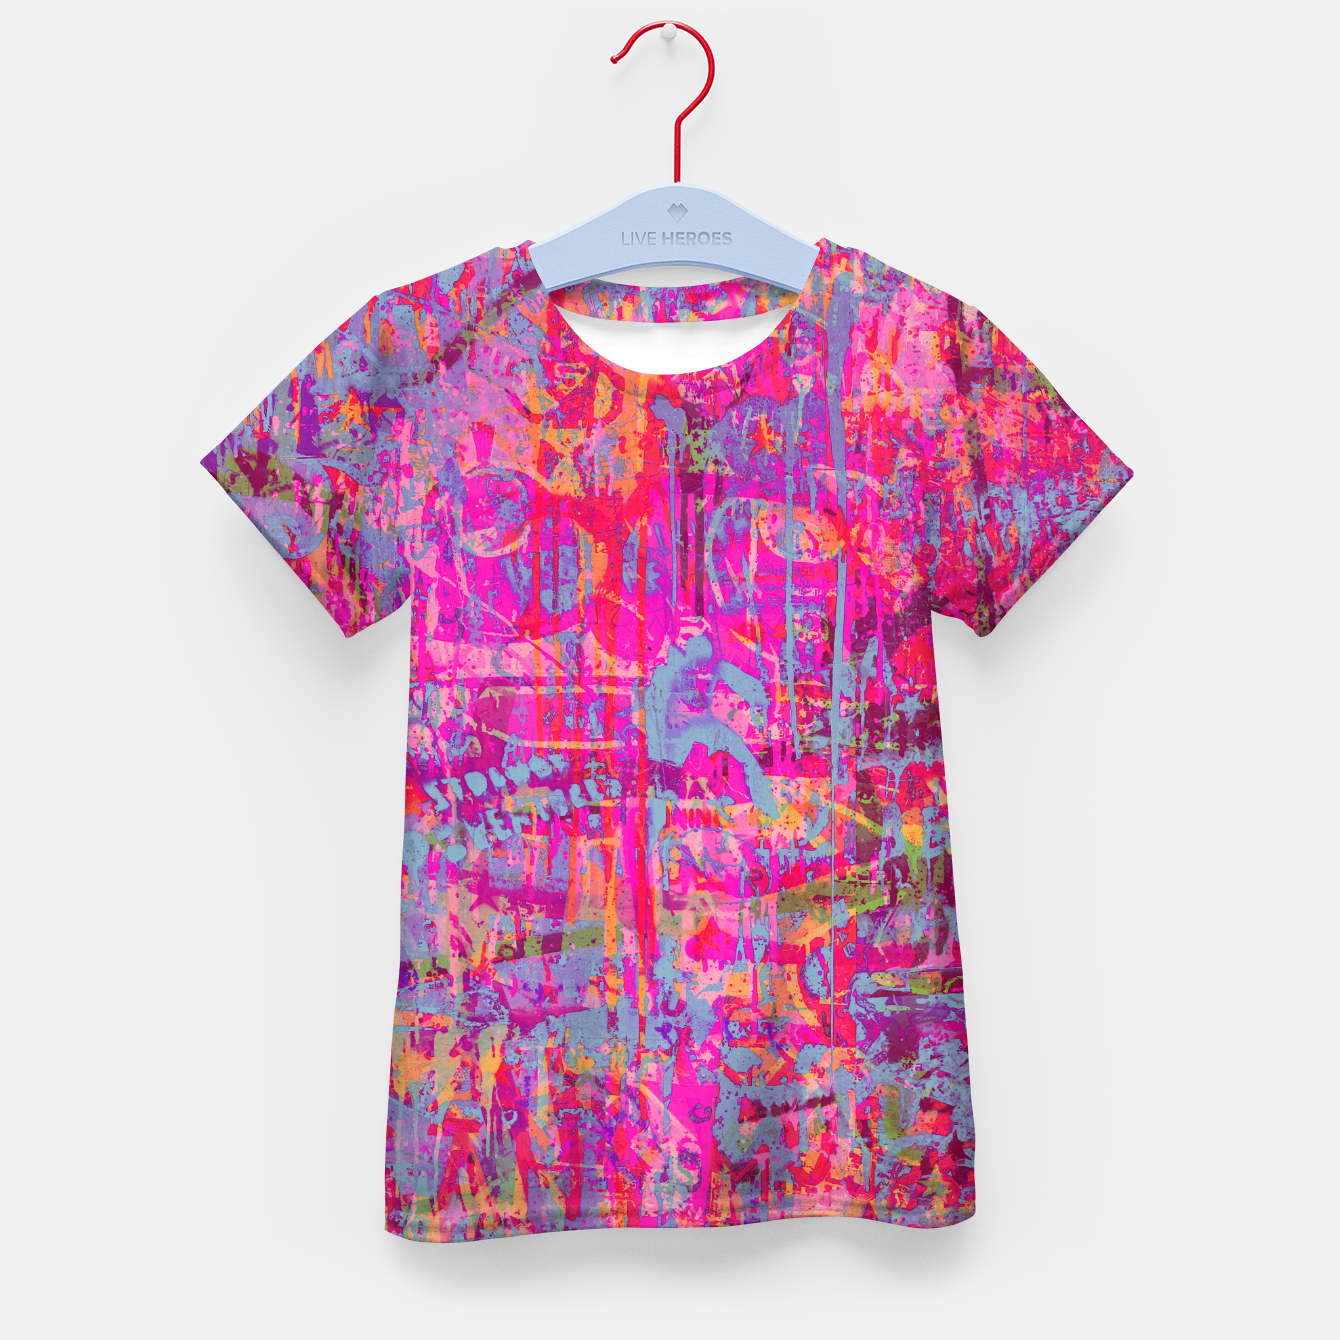 Image of Pink Graffiti Kid's t-shirt - Live Heroes